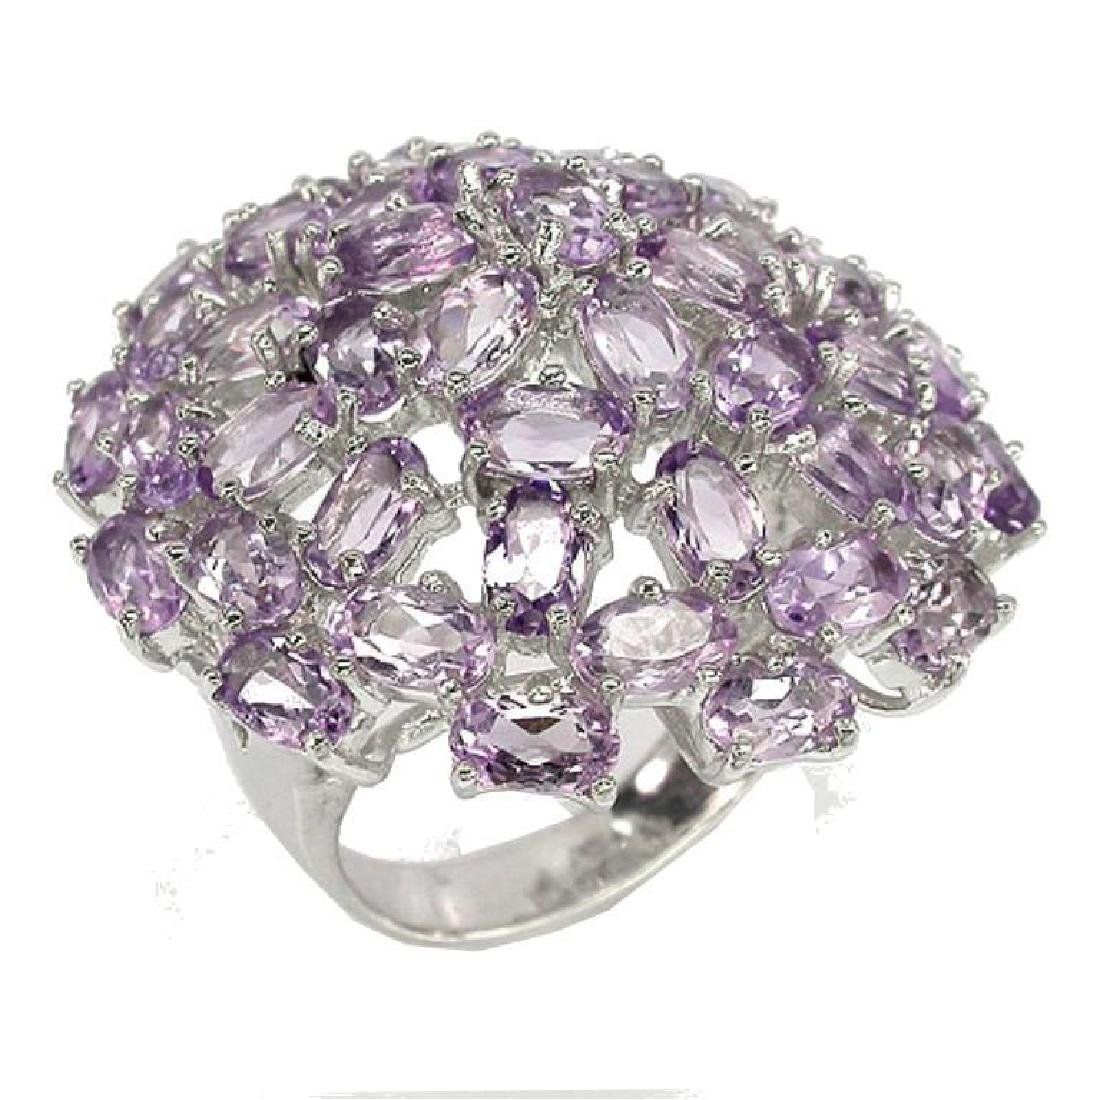 Amethyst & Sterling Dome Cocktail Ring - 2